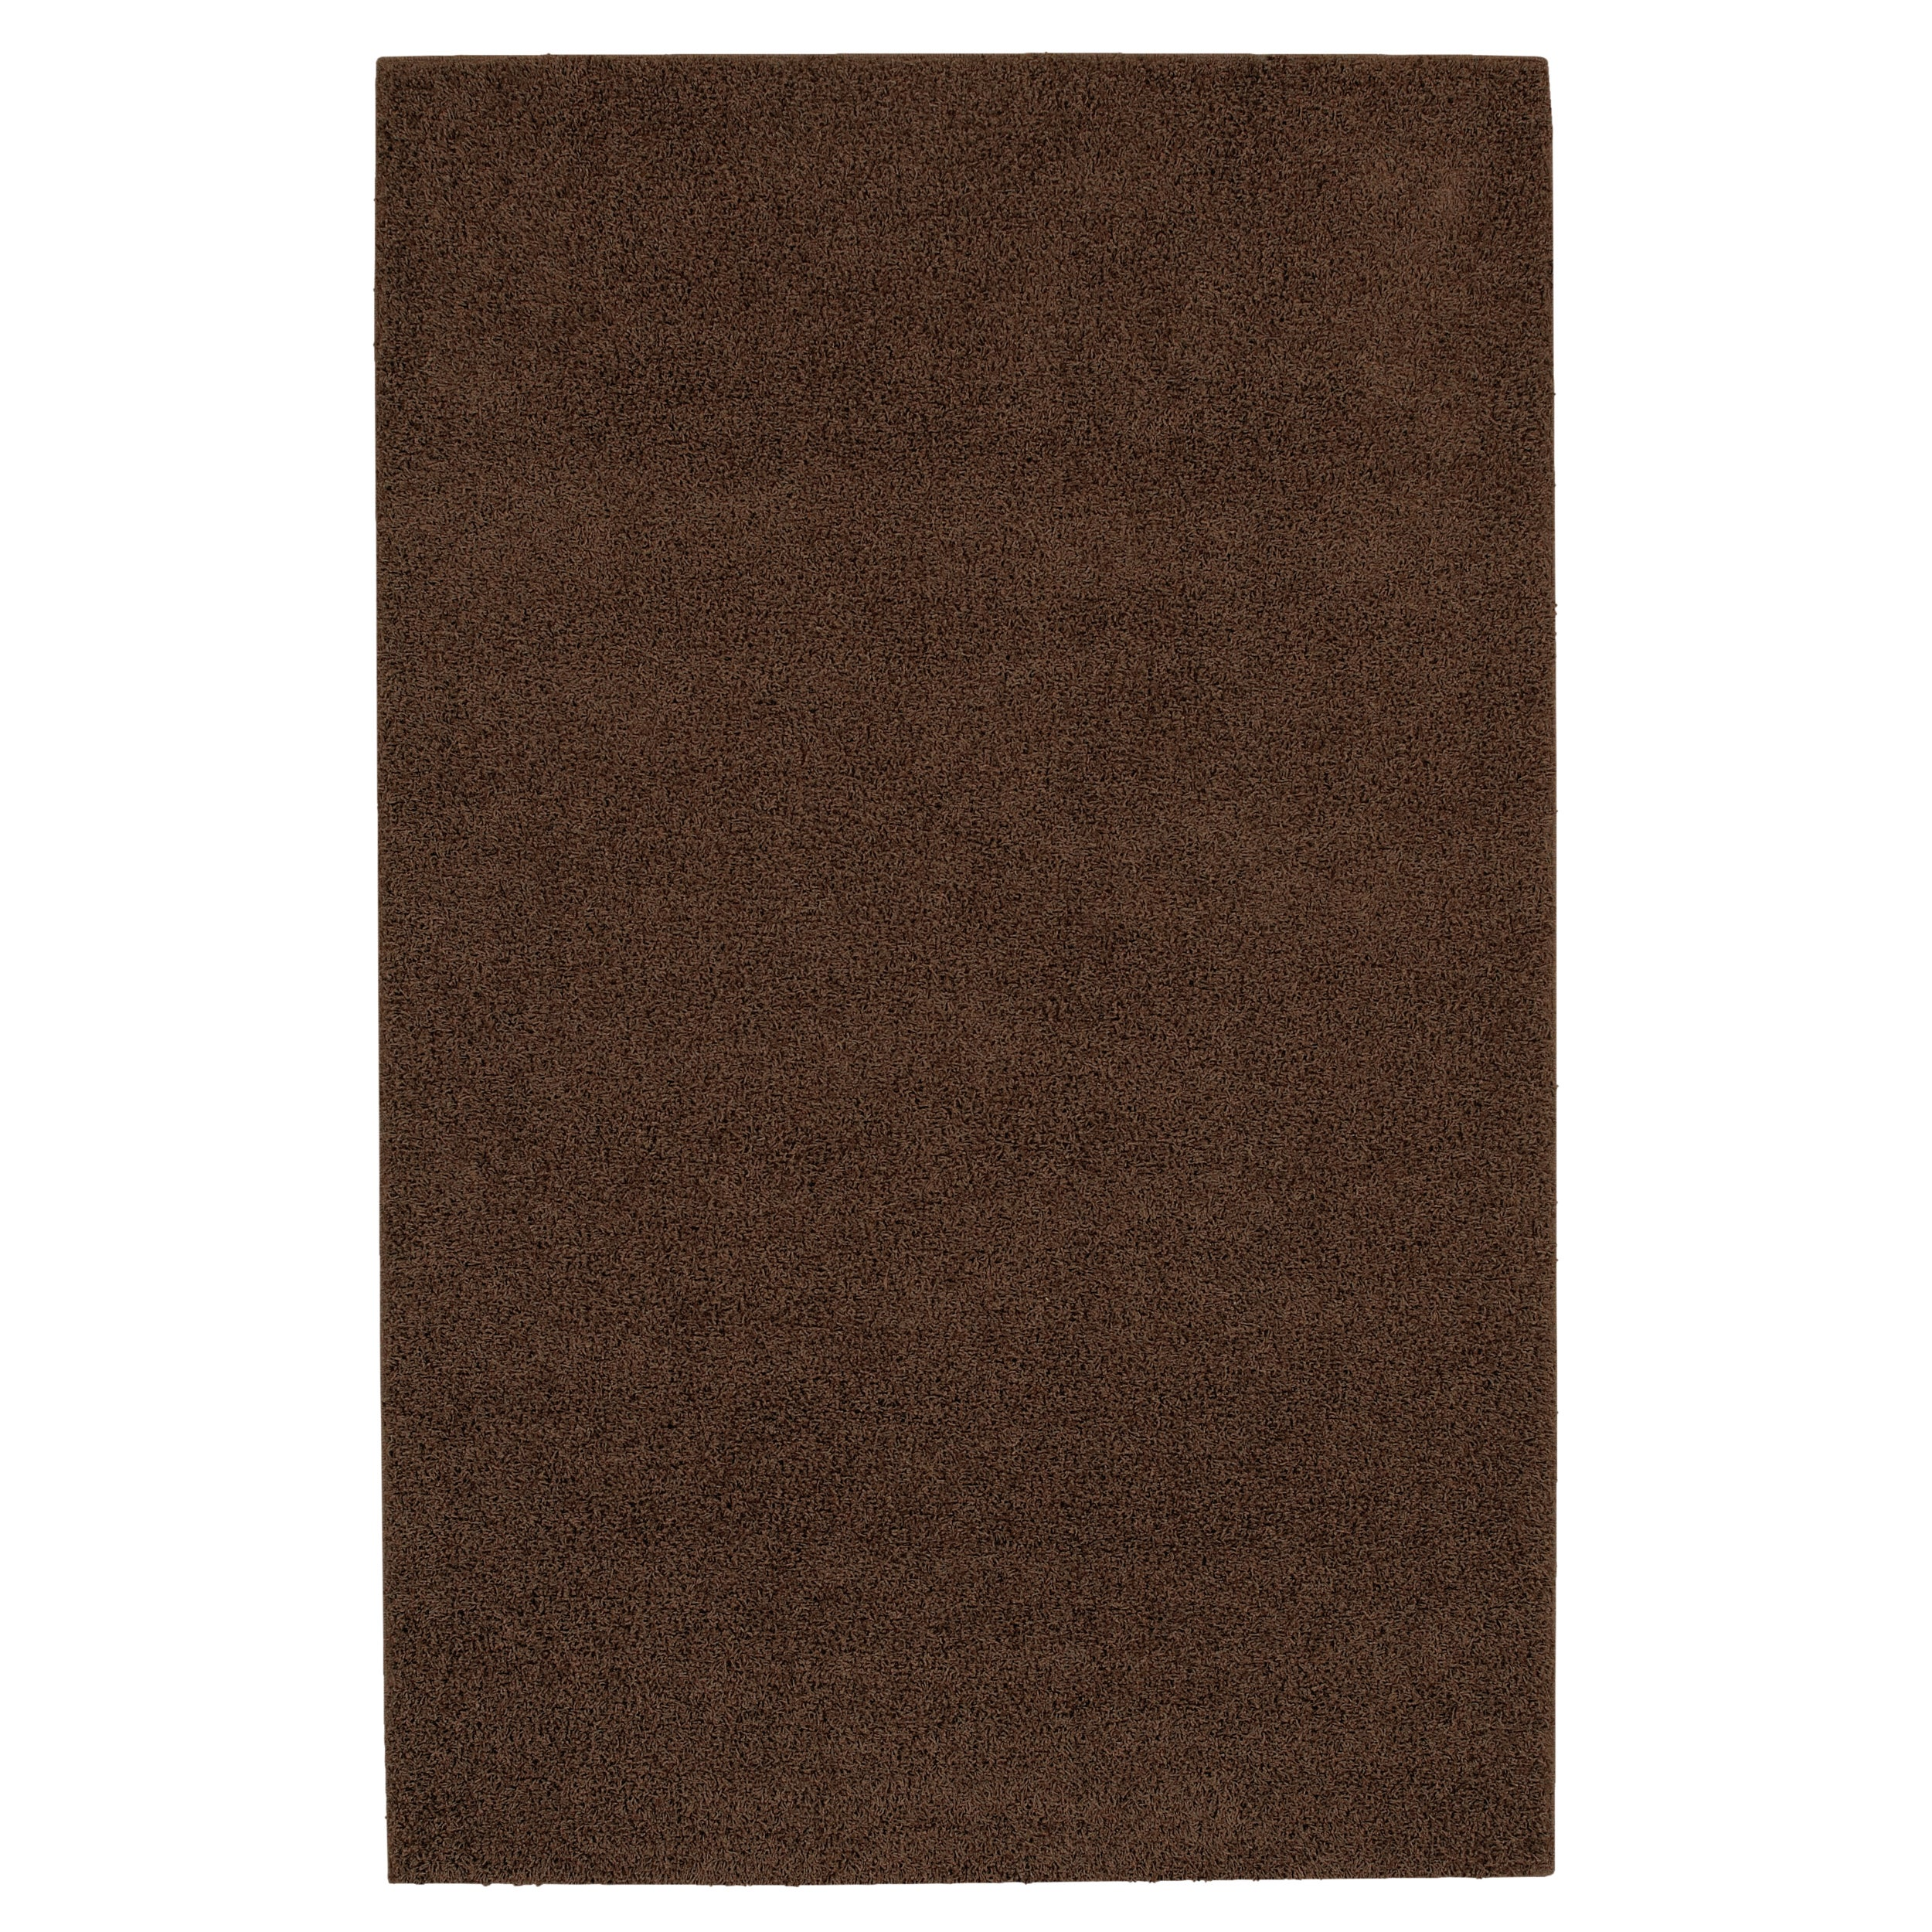 Solid Shag Brown Rug (5' x 8') - Thumbnail 0